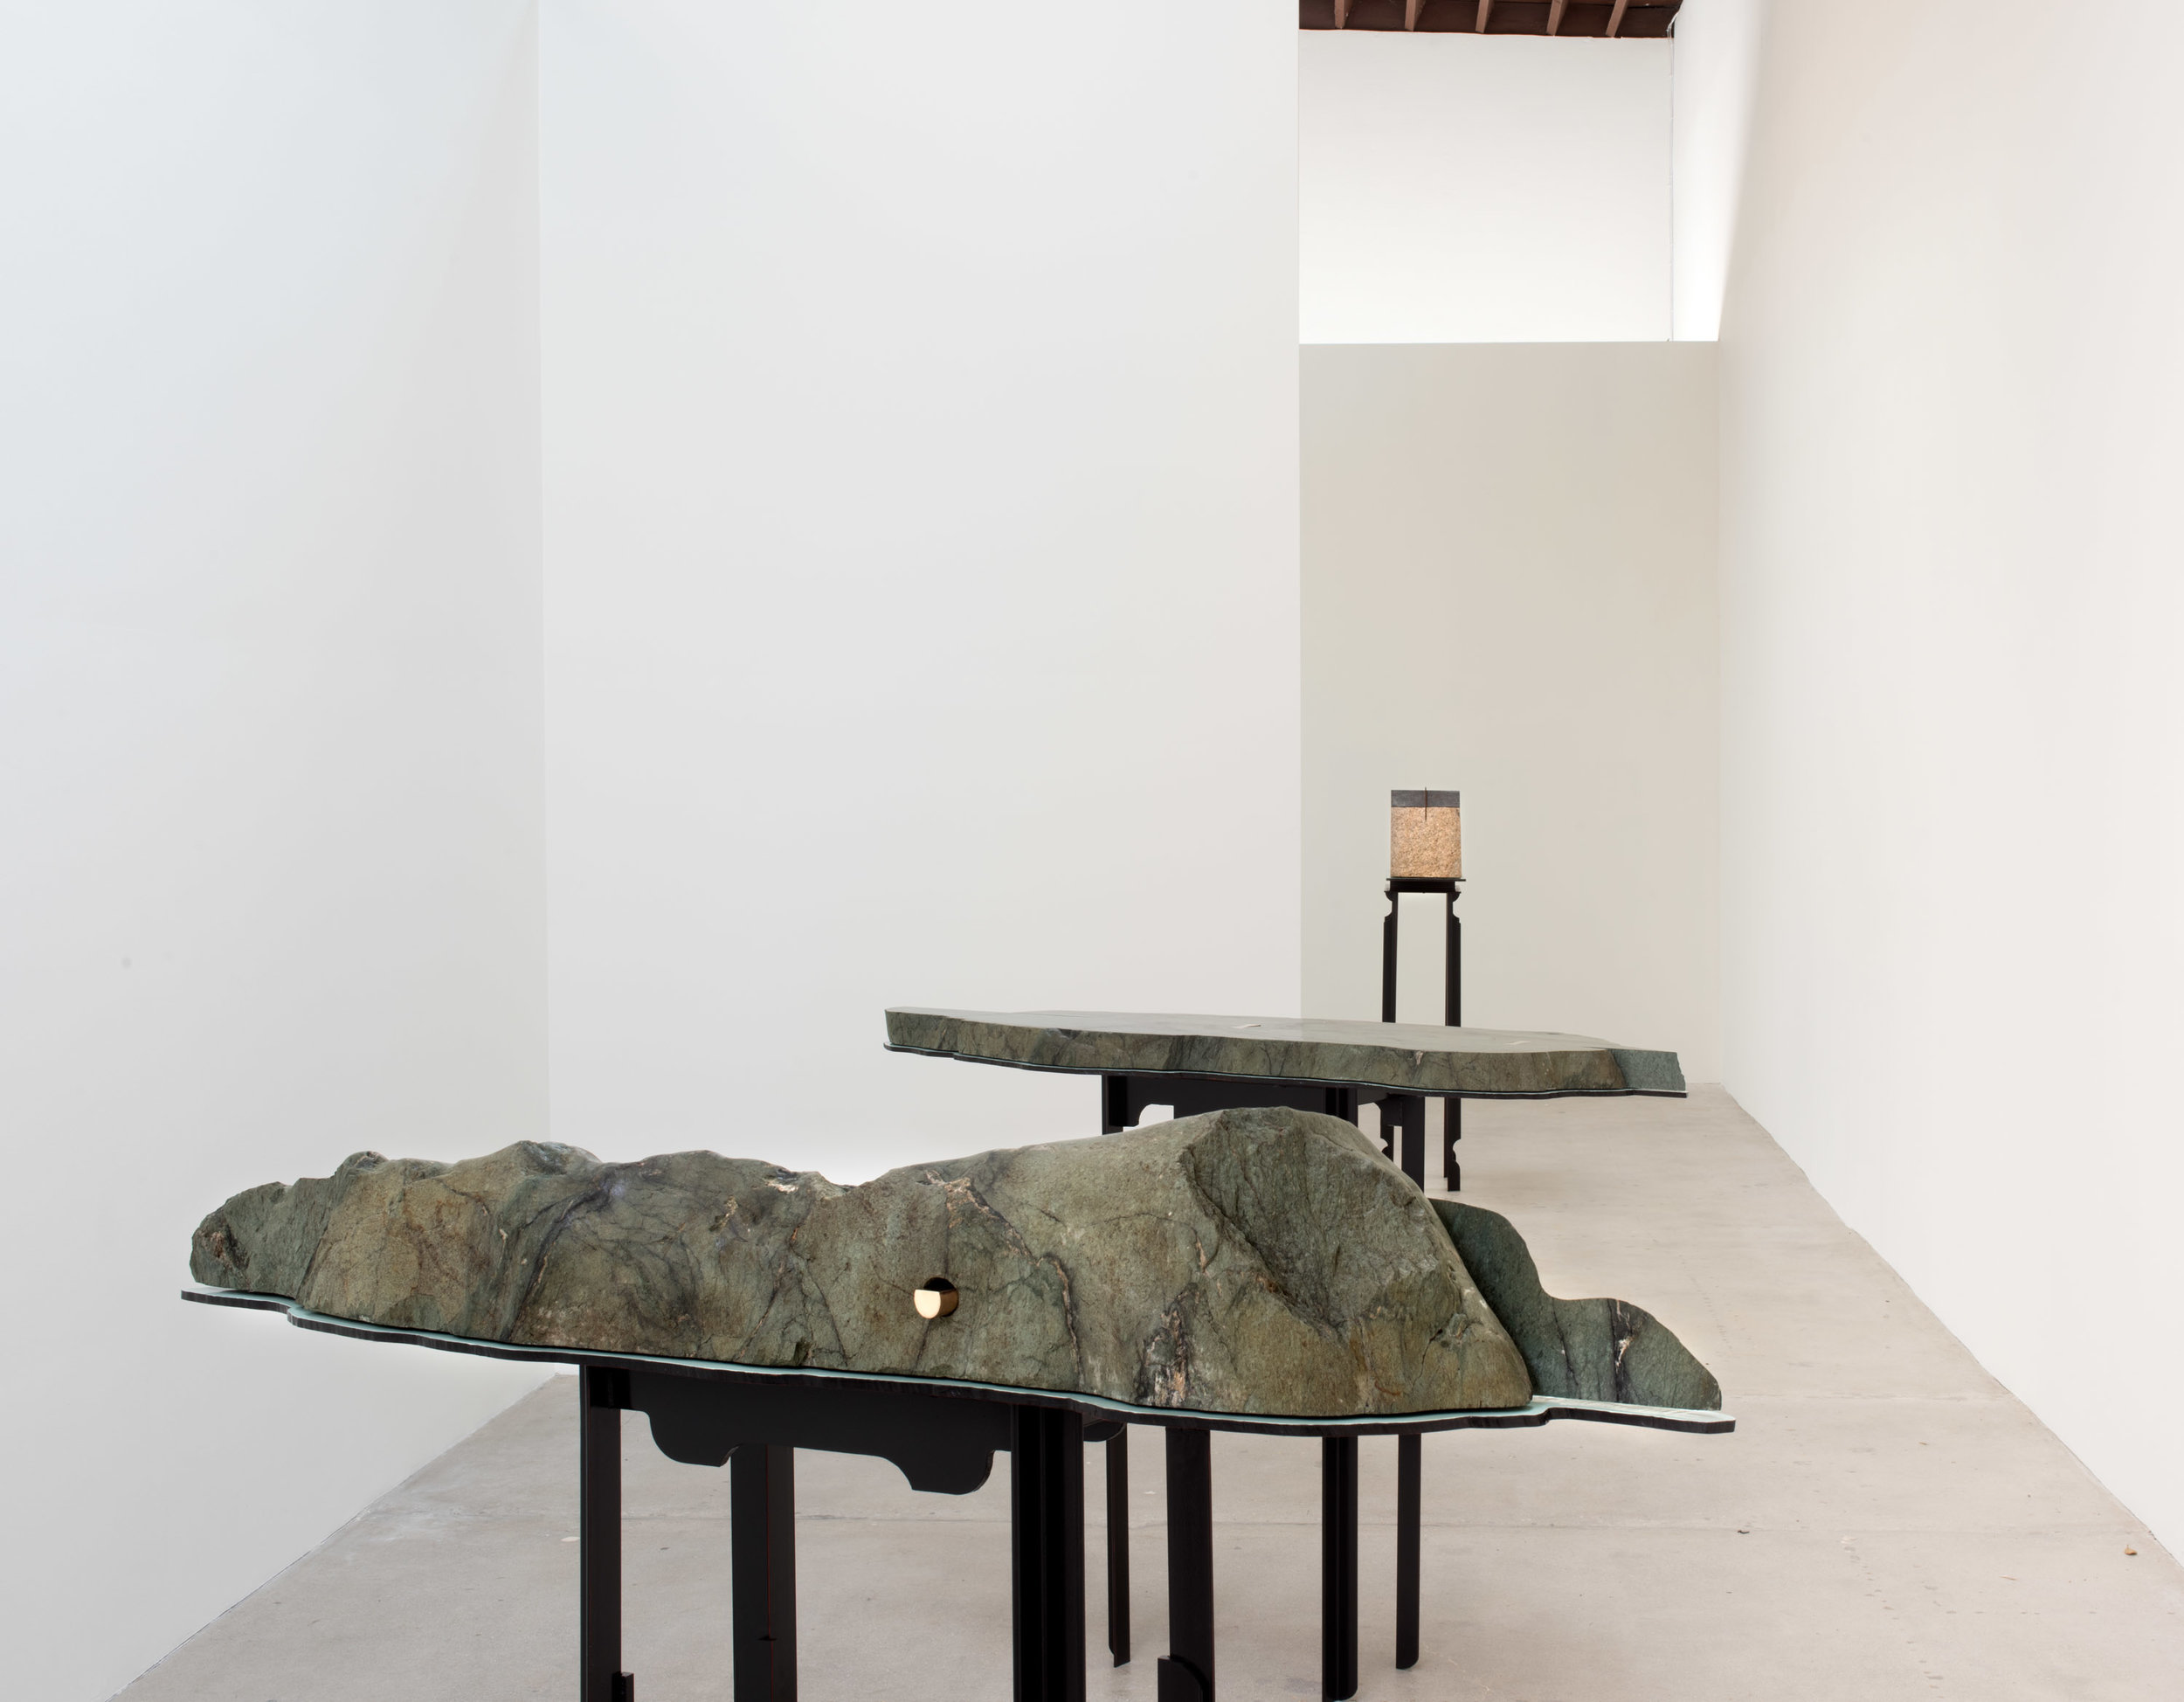 KYWH_Six_Significant_Landscapes_Installation_View_07.jpg